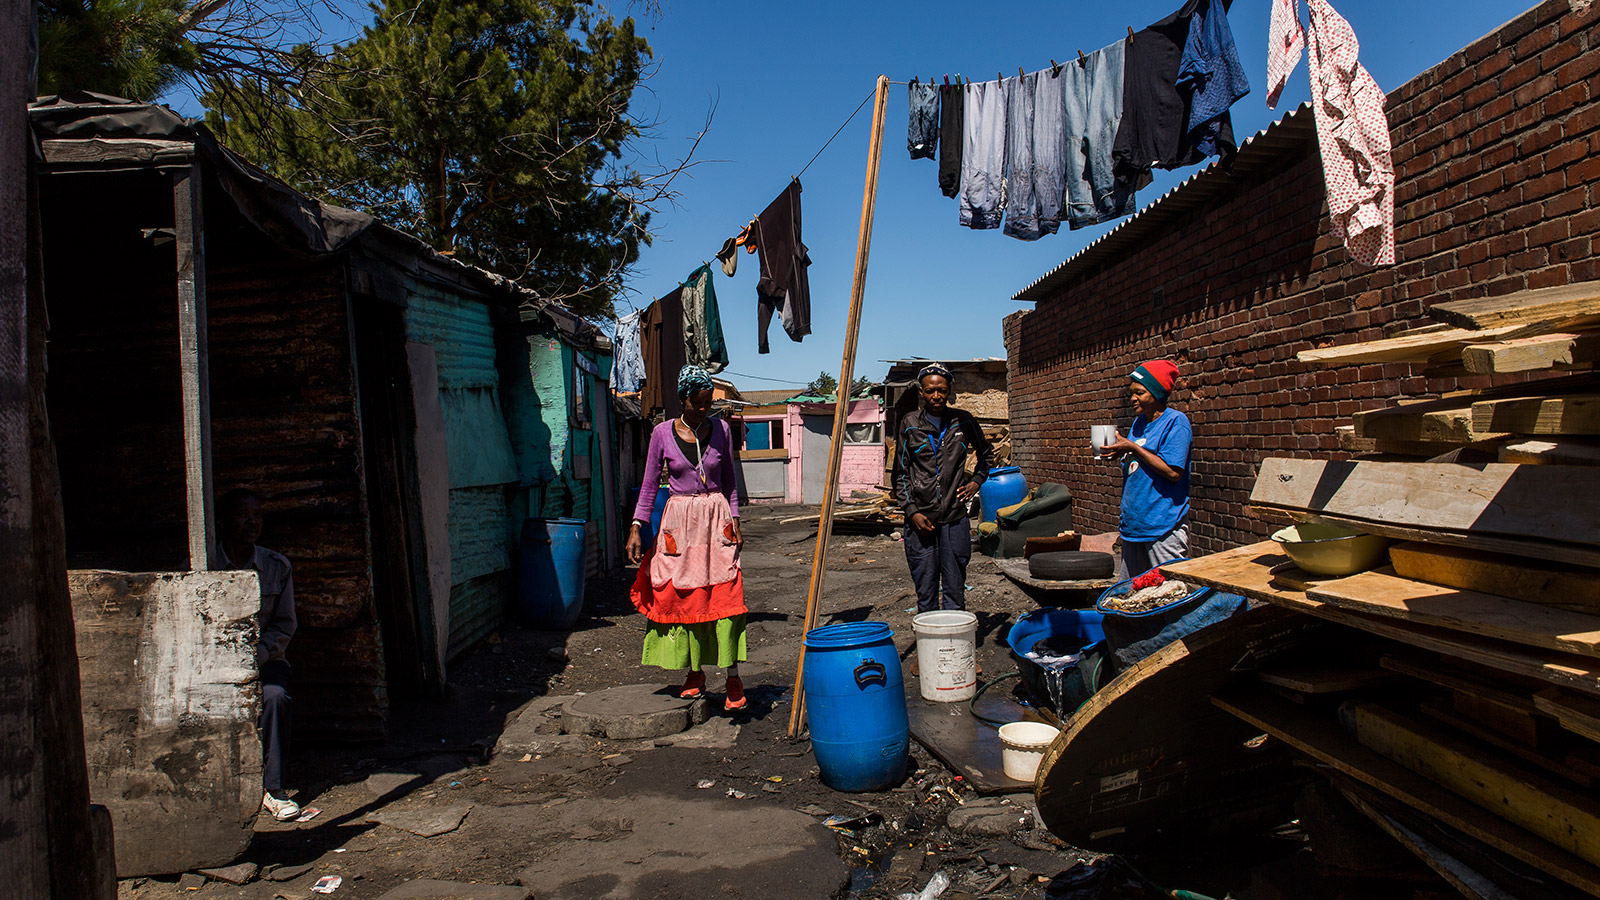 cape-town-and-langa-Michael-Bainbridge-073.jpg